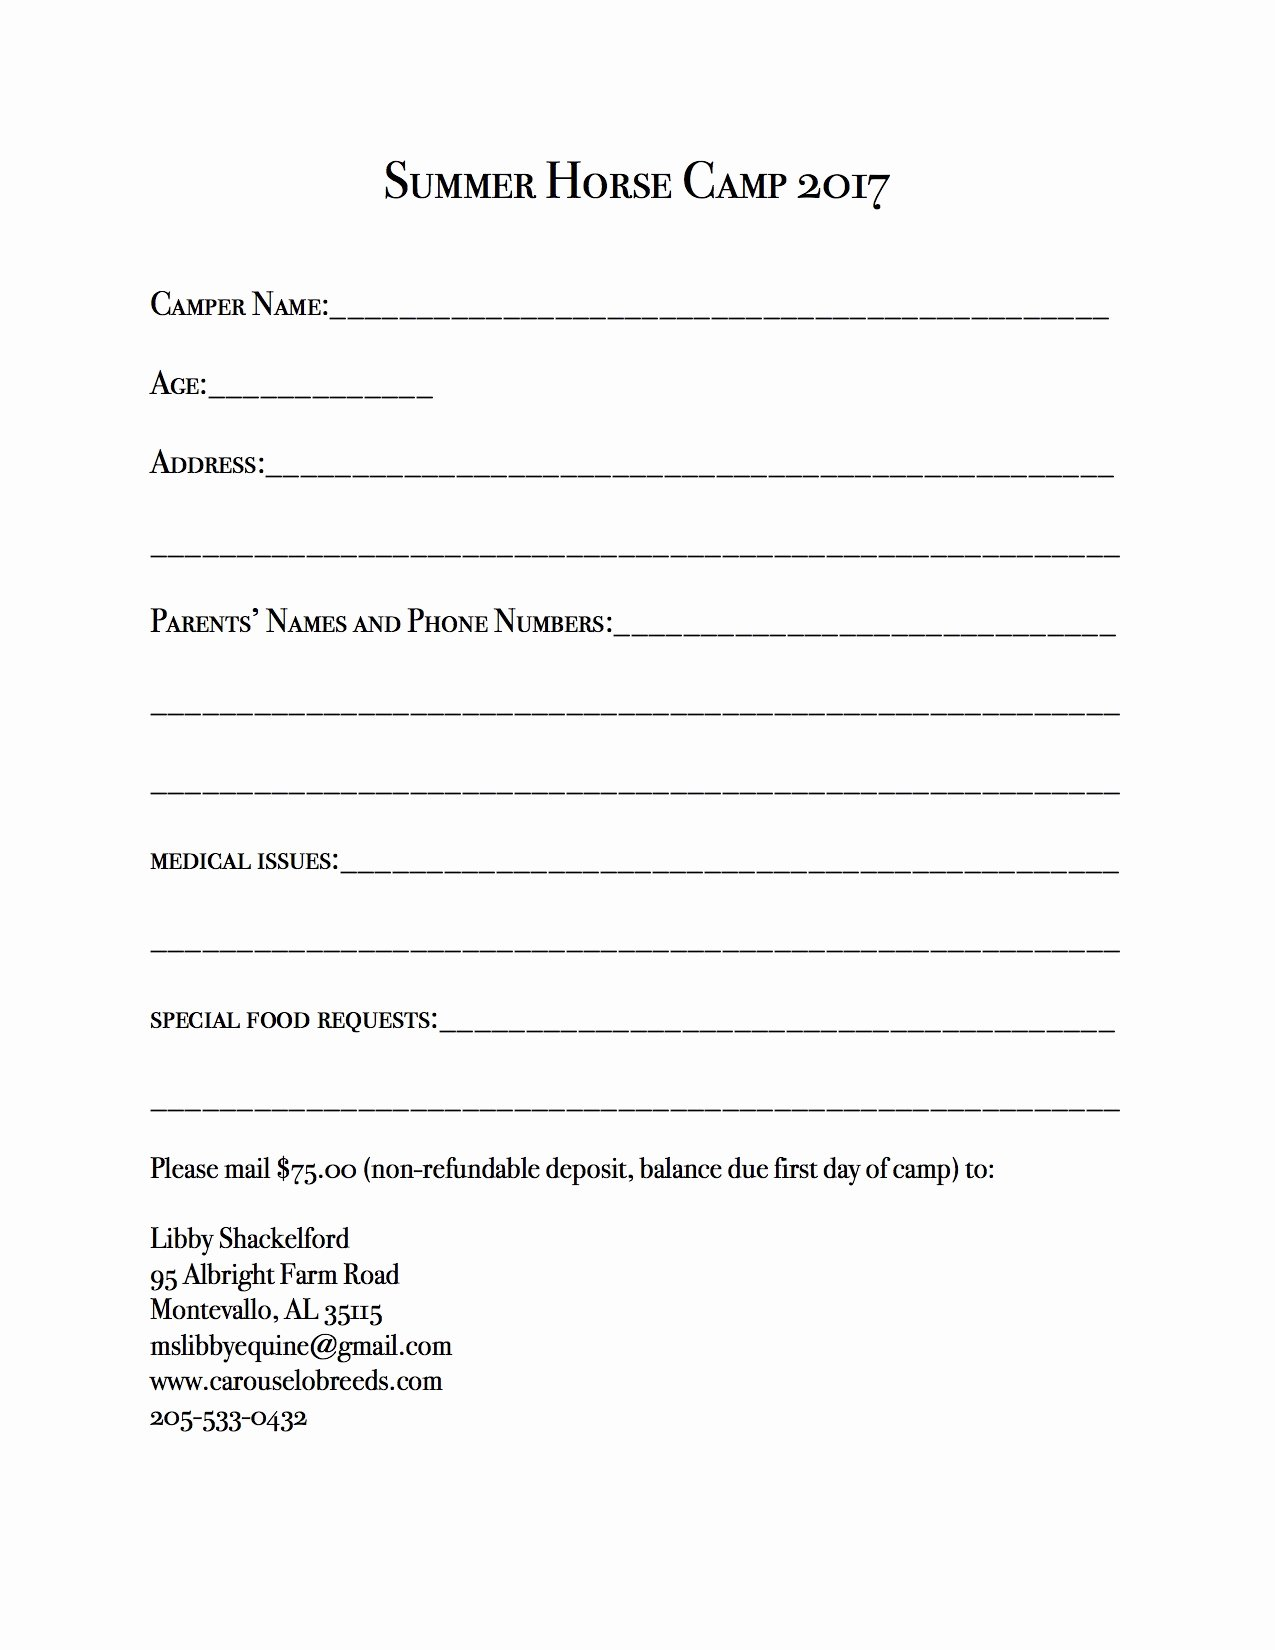 Day Camp Registration form Template Awesome Summer Horse Camp 2017